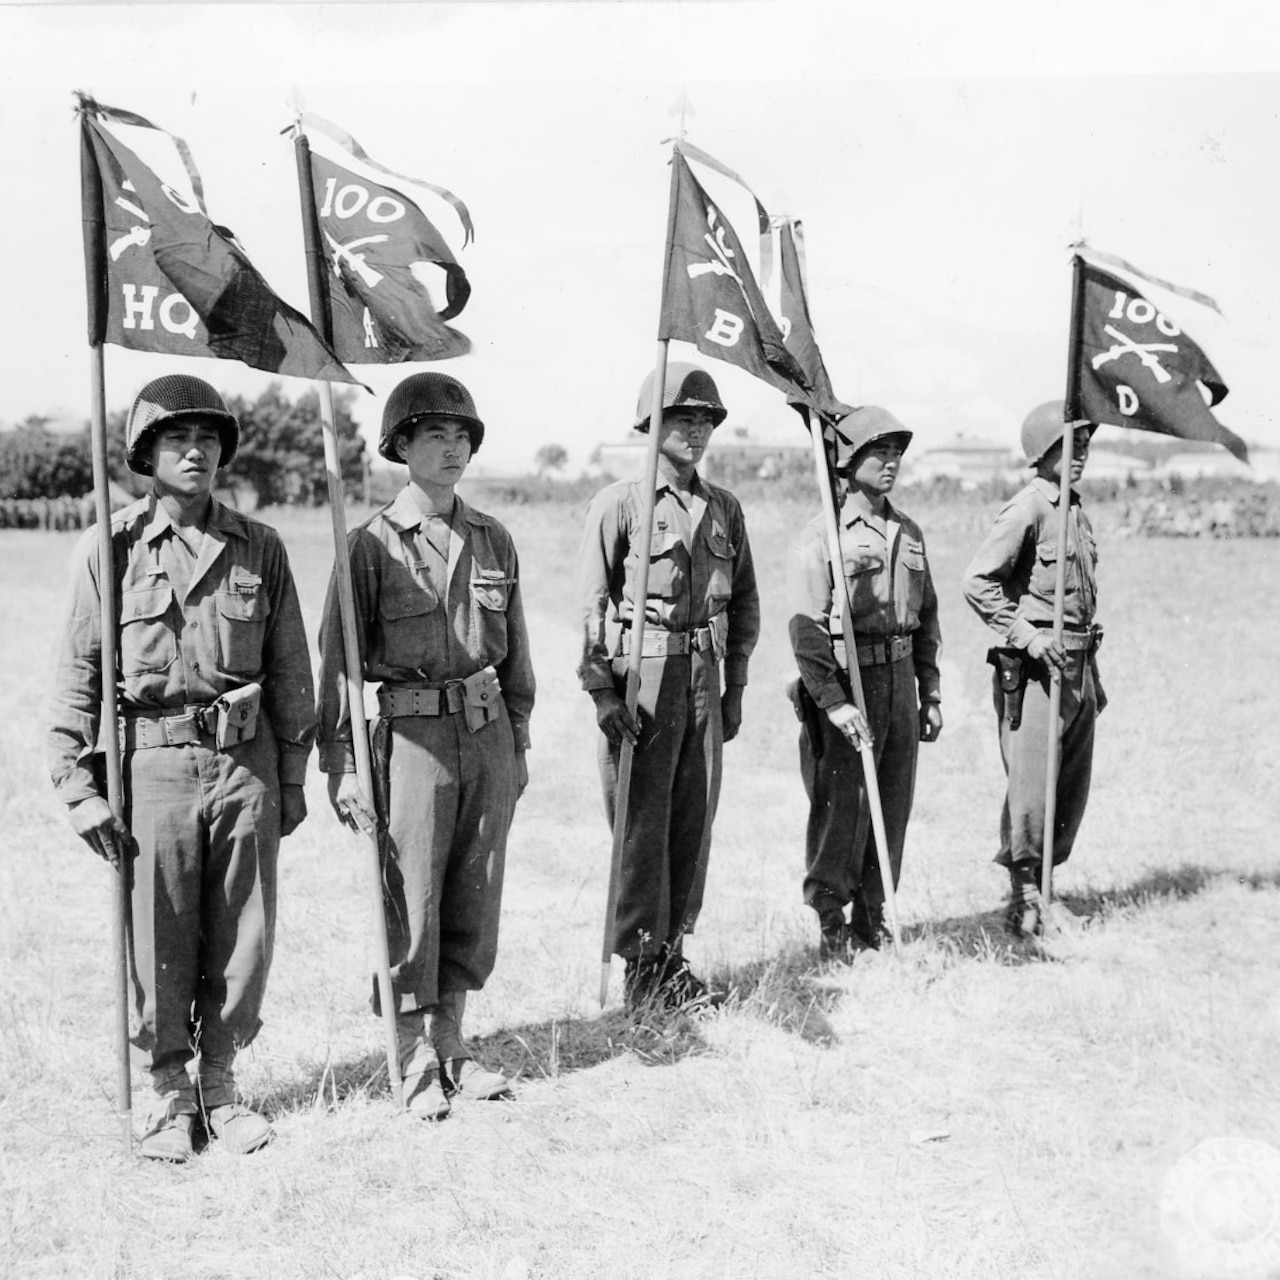 Five men stand at attention while holding flags.